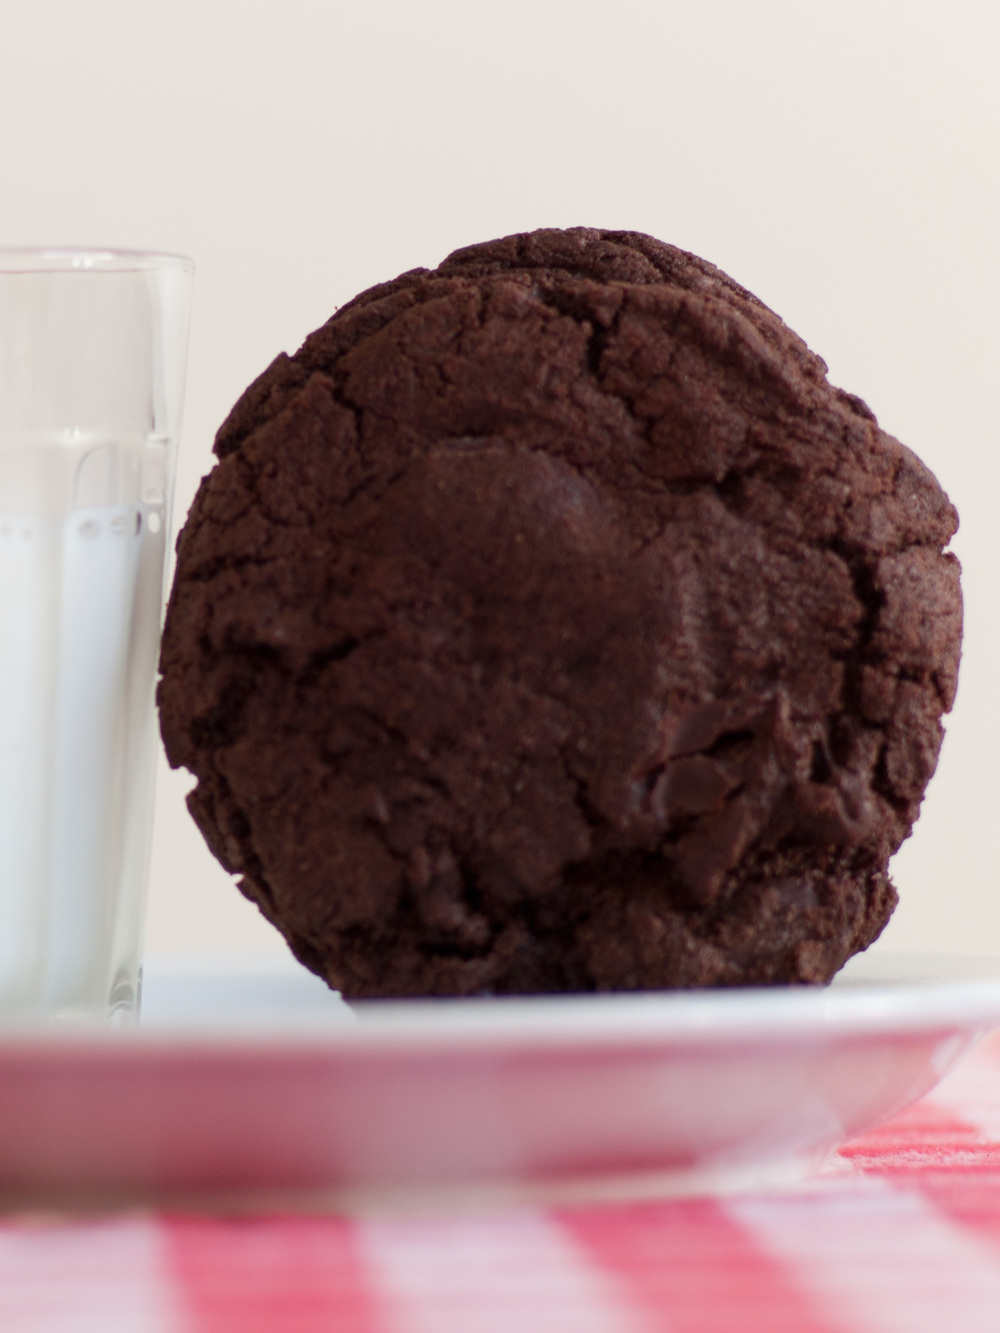 Chocolate cookie.jpg